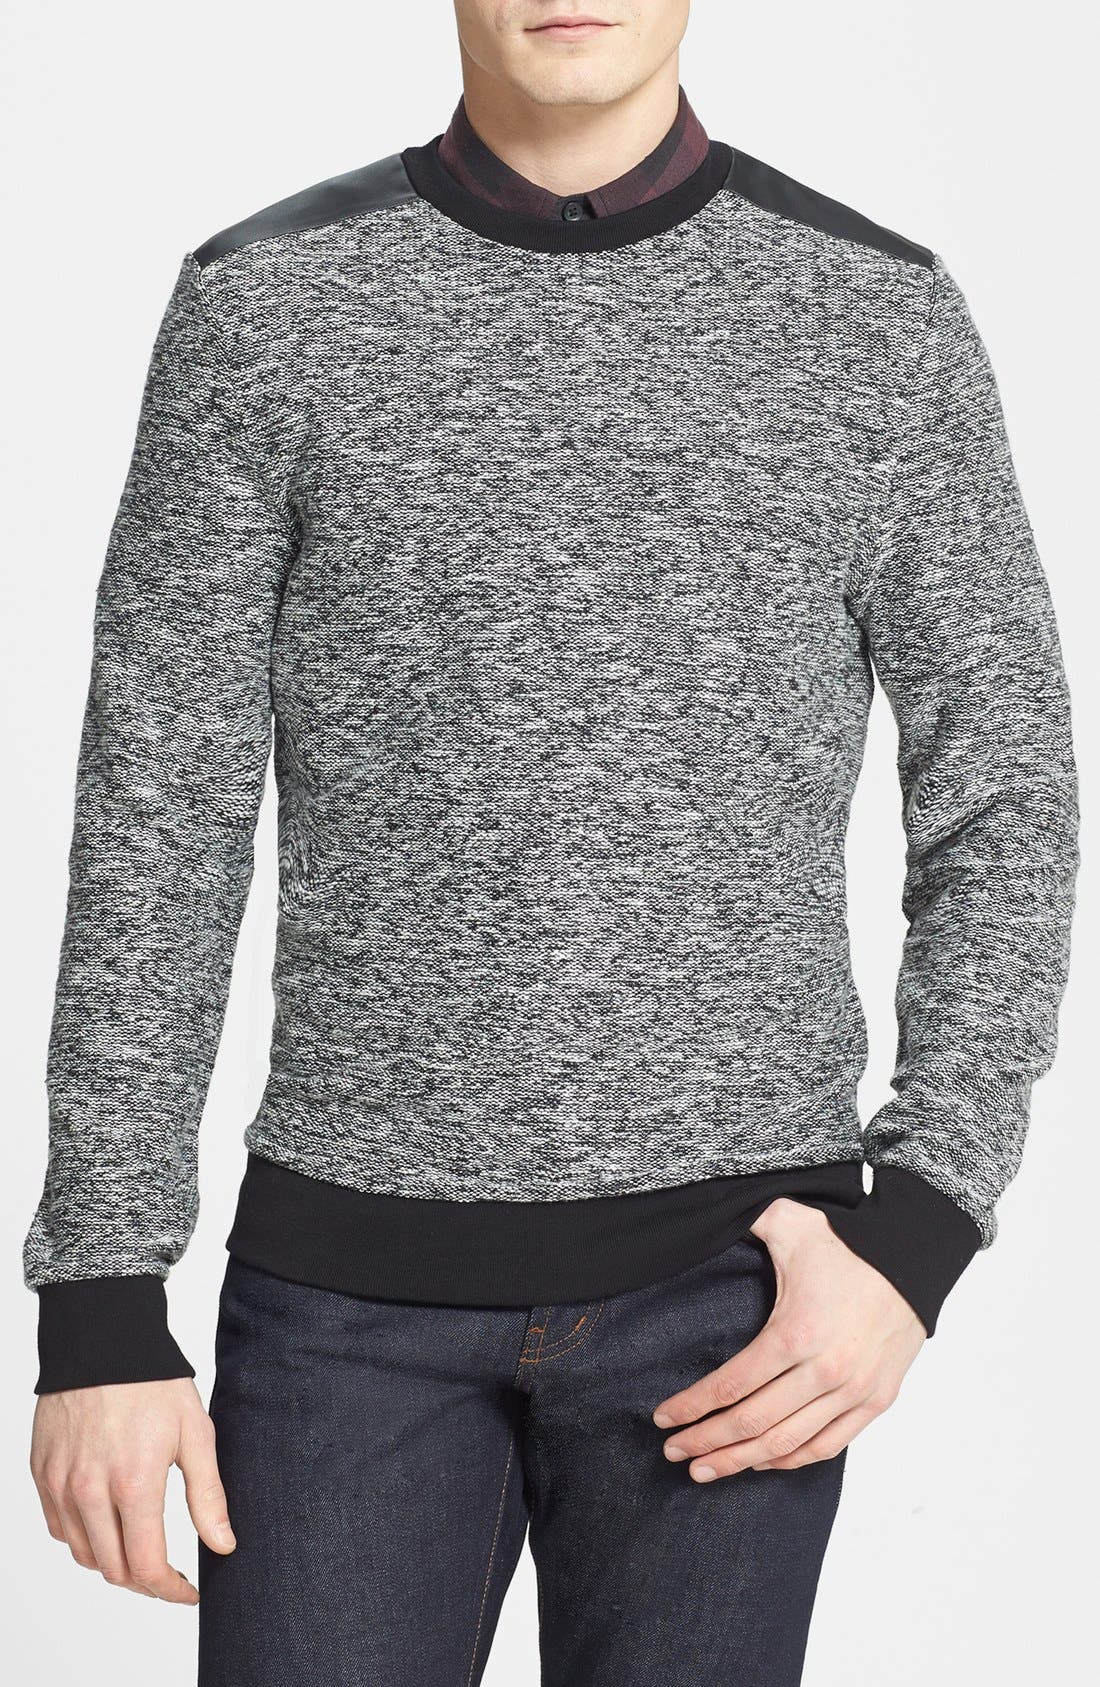 Alternate Image 1 Selected - Topman Crewneck Sweatshirt with Faux Leather Shoulder Trim